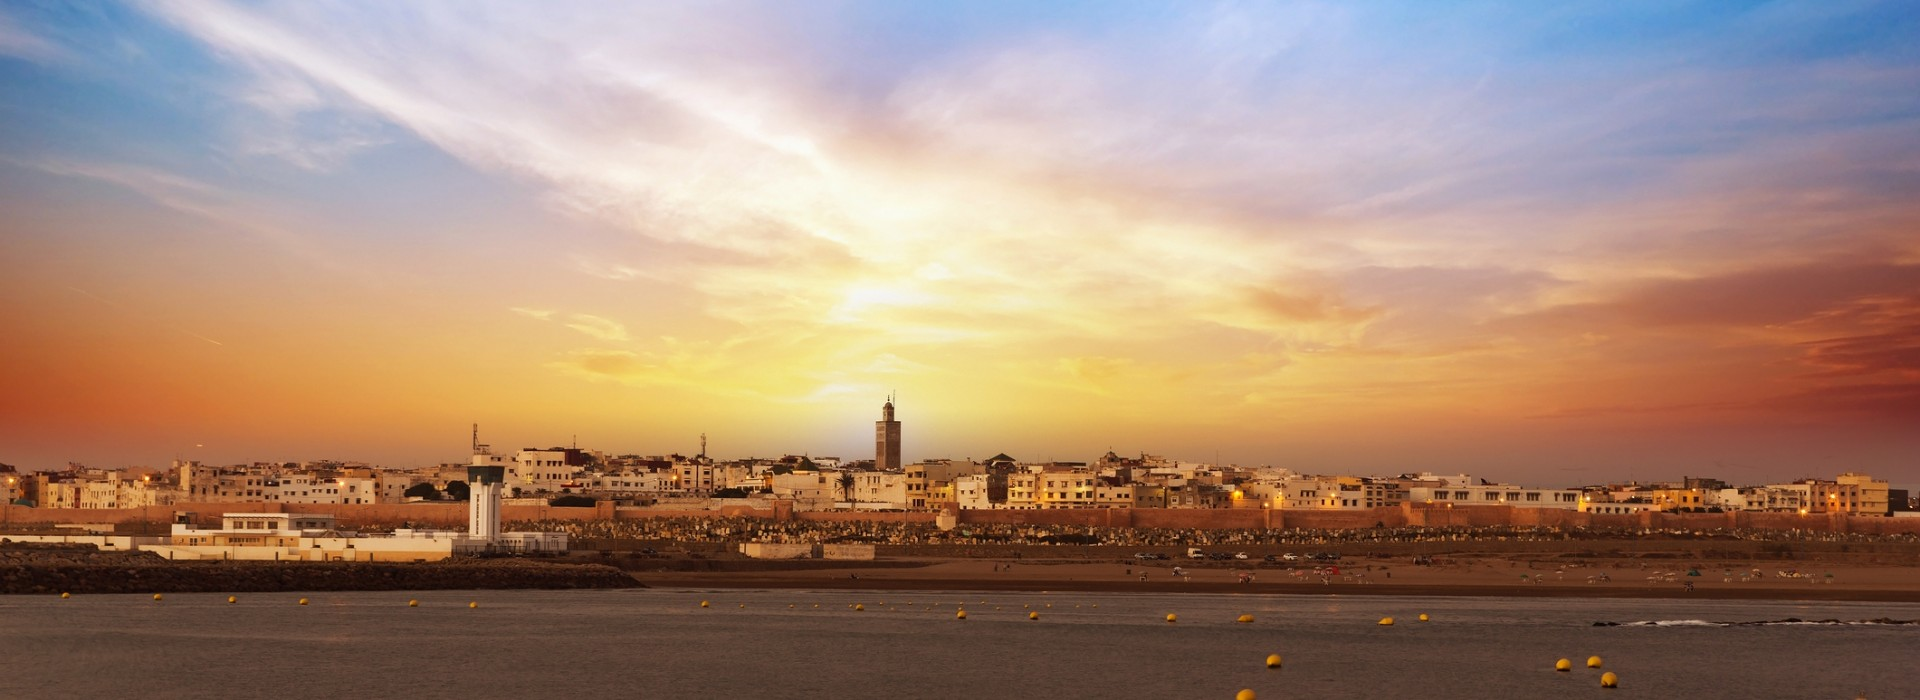 Walking tours in Casablanca